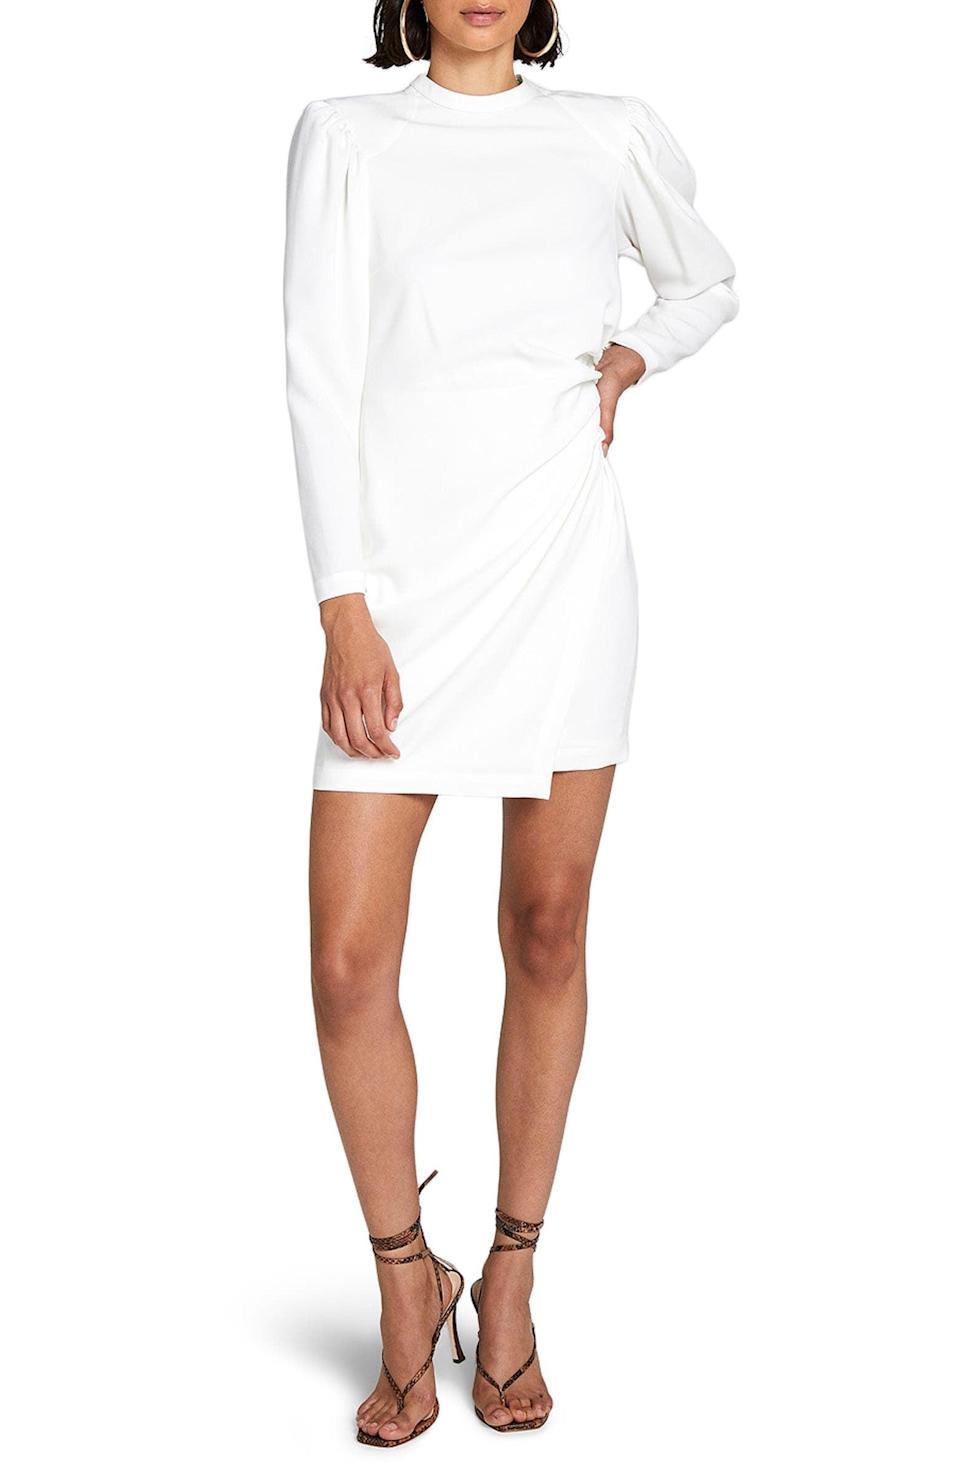 <p>This <span>A.L.C. Jane Long Leg-of-Mutton Sleeve Minidress</span> ($297, originally $495) is so flattering and timeless. It's a great pick to have in your closet always.</p>